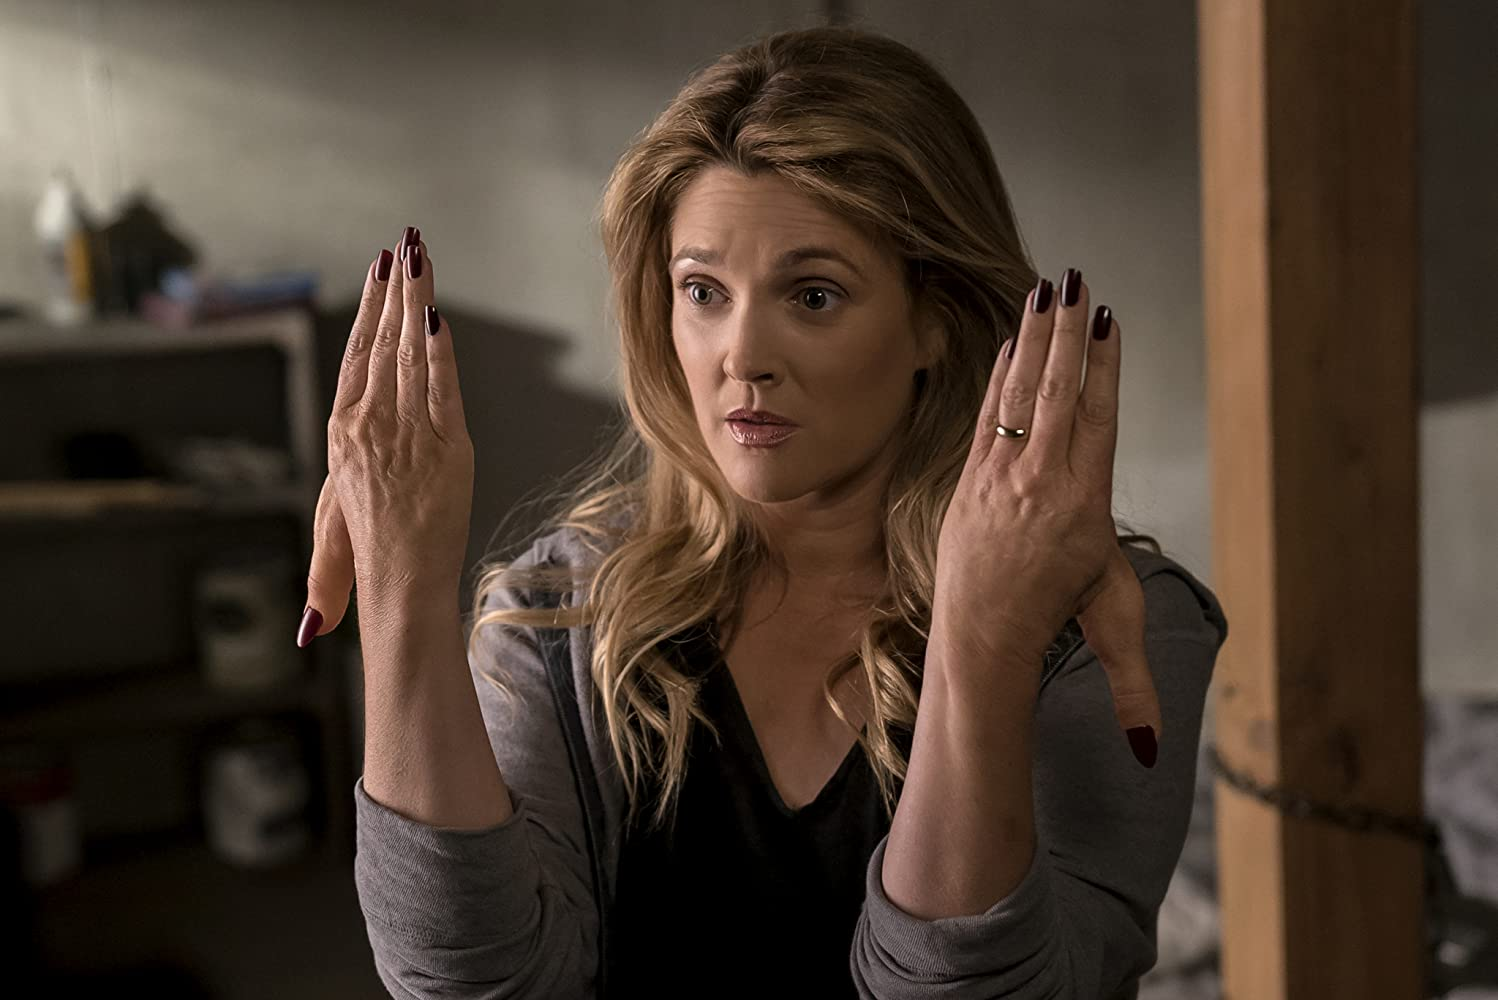 Drew Barrymore in Santa Clarita Diet (2017)